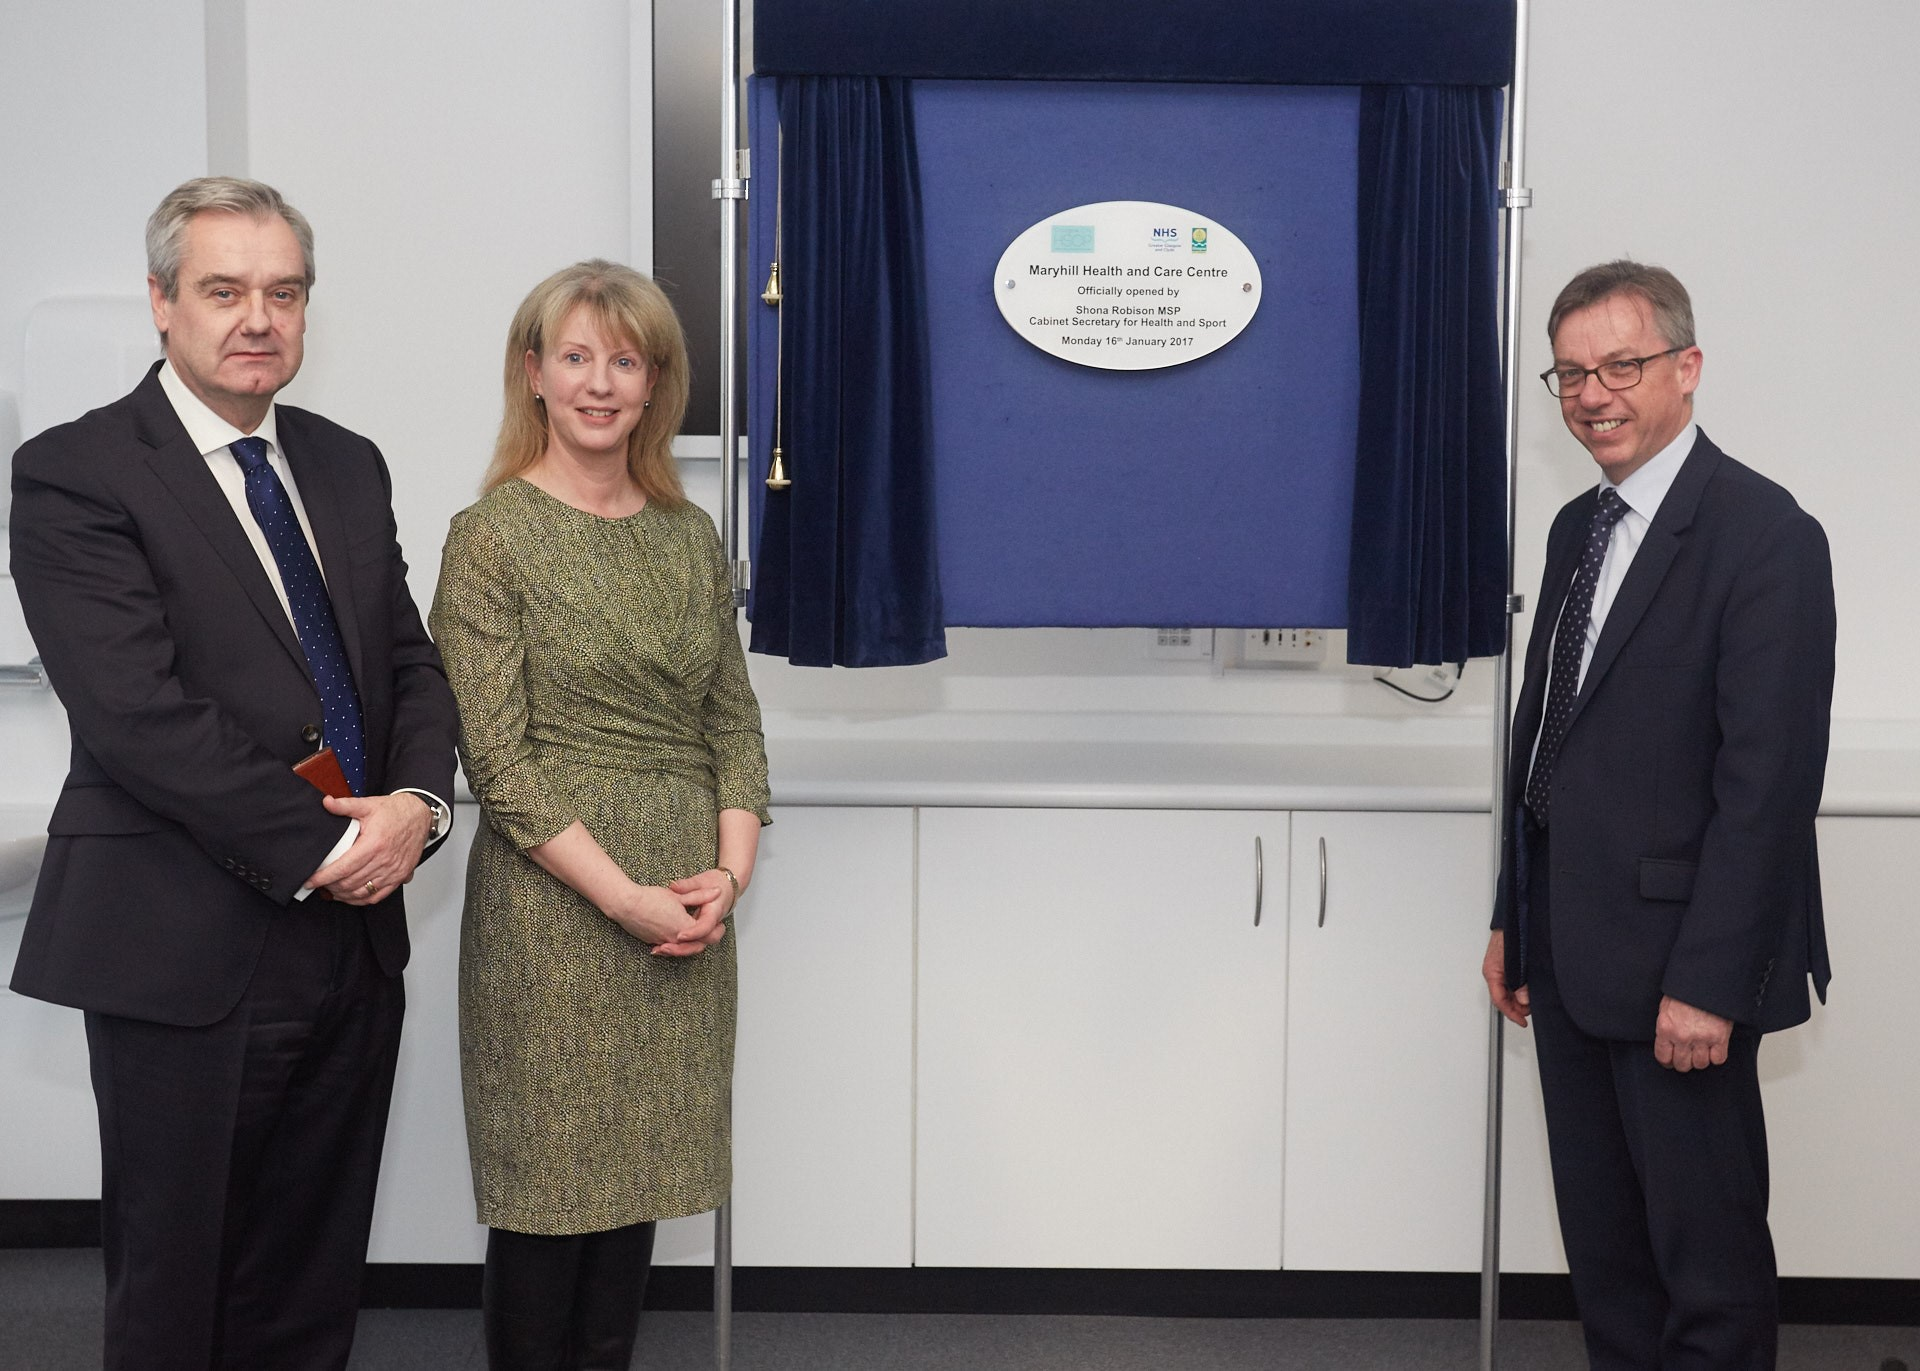 New £12.4 Million Maryhill Health & Care Centre officially opened by Cabinet Secretary for Health